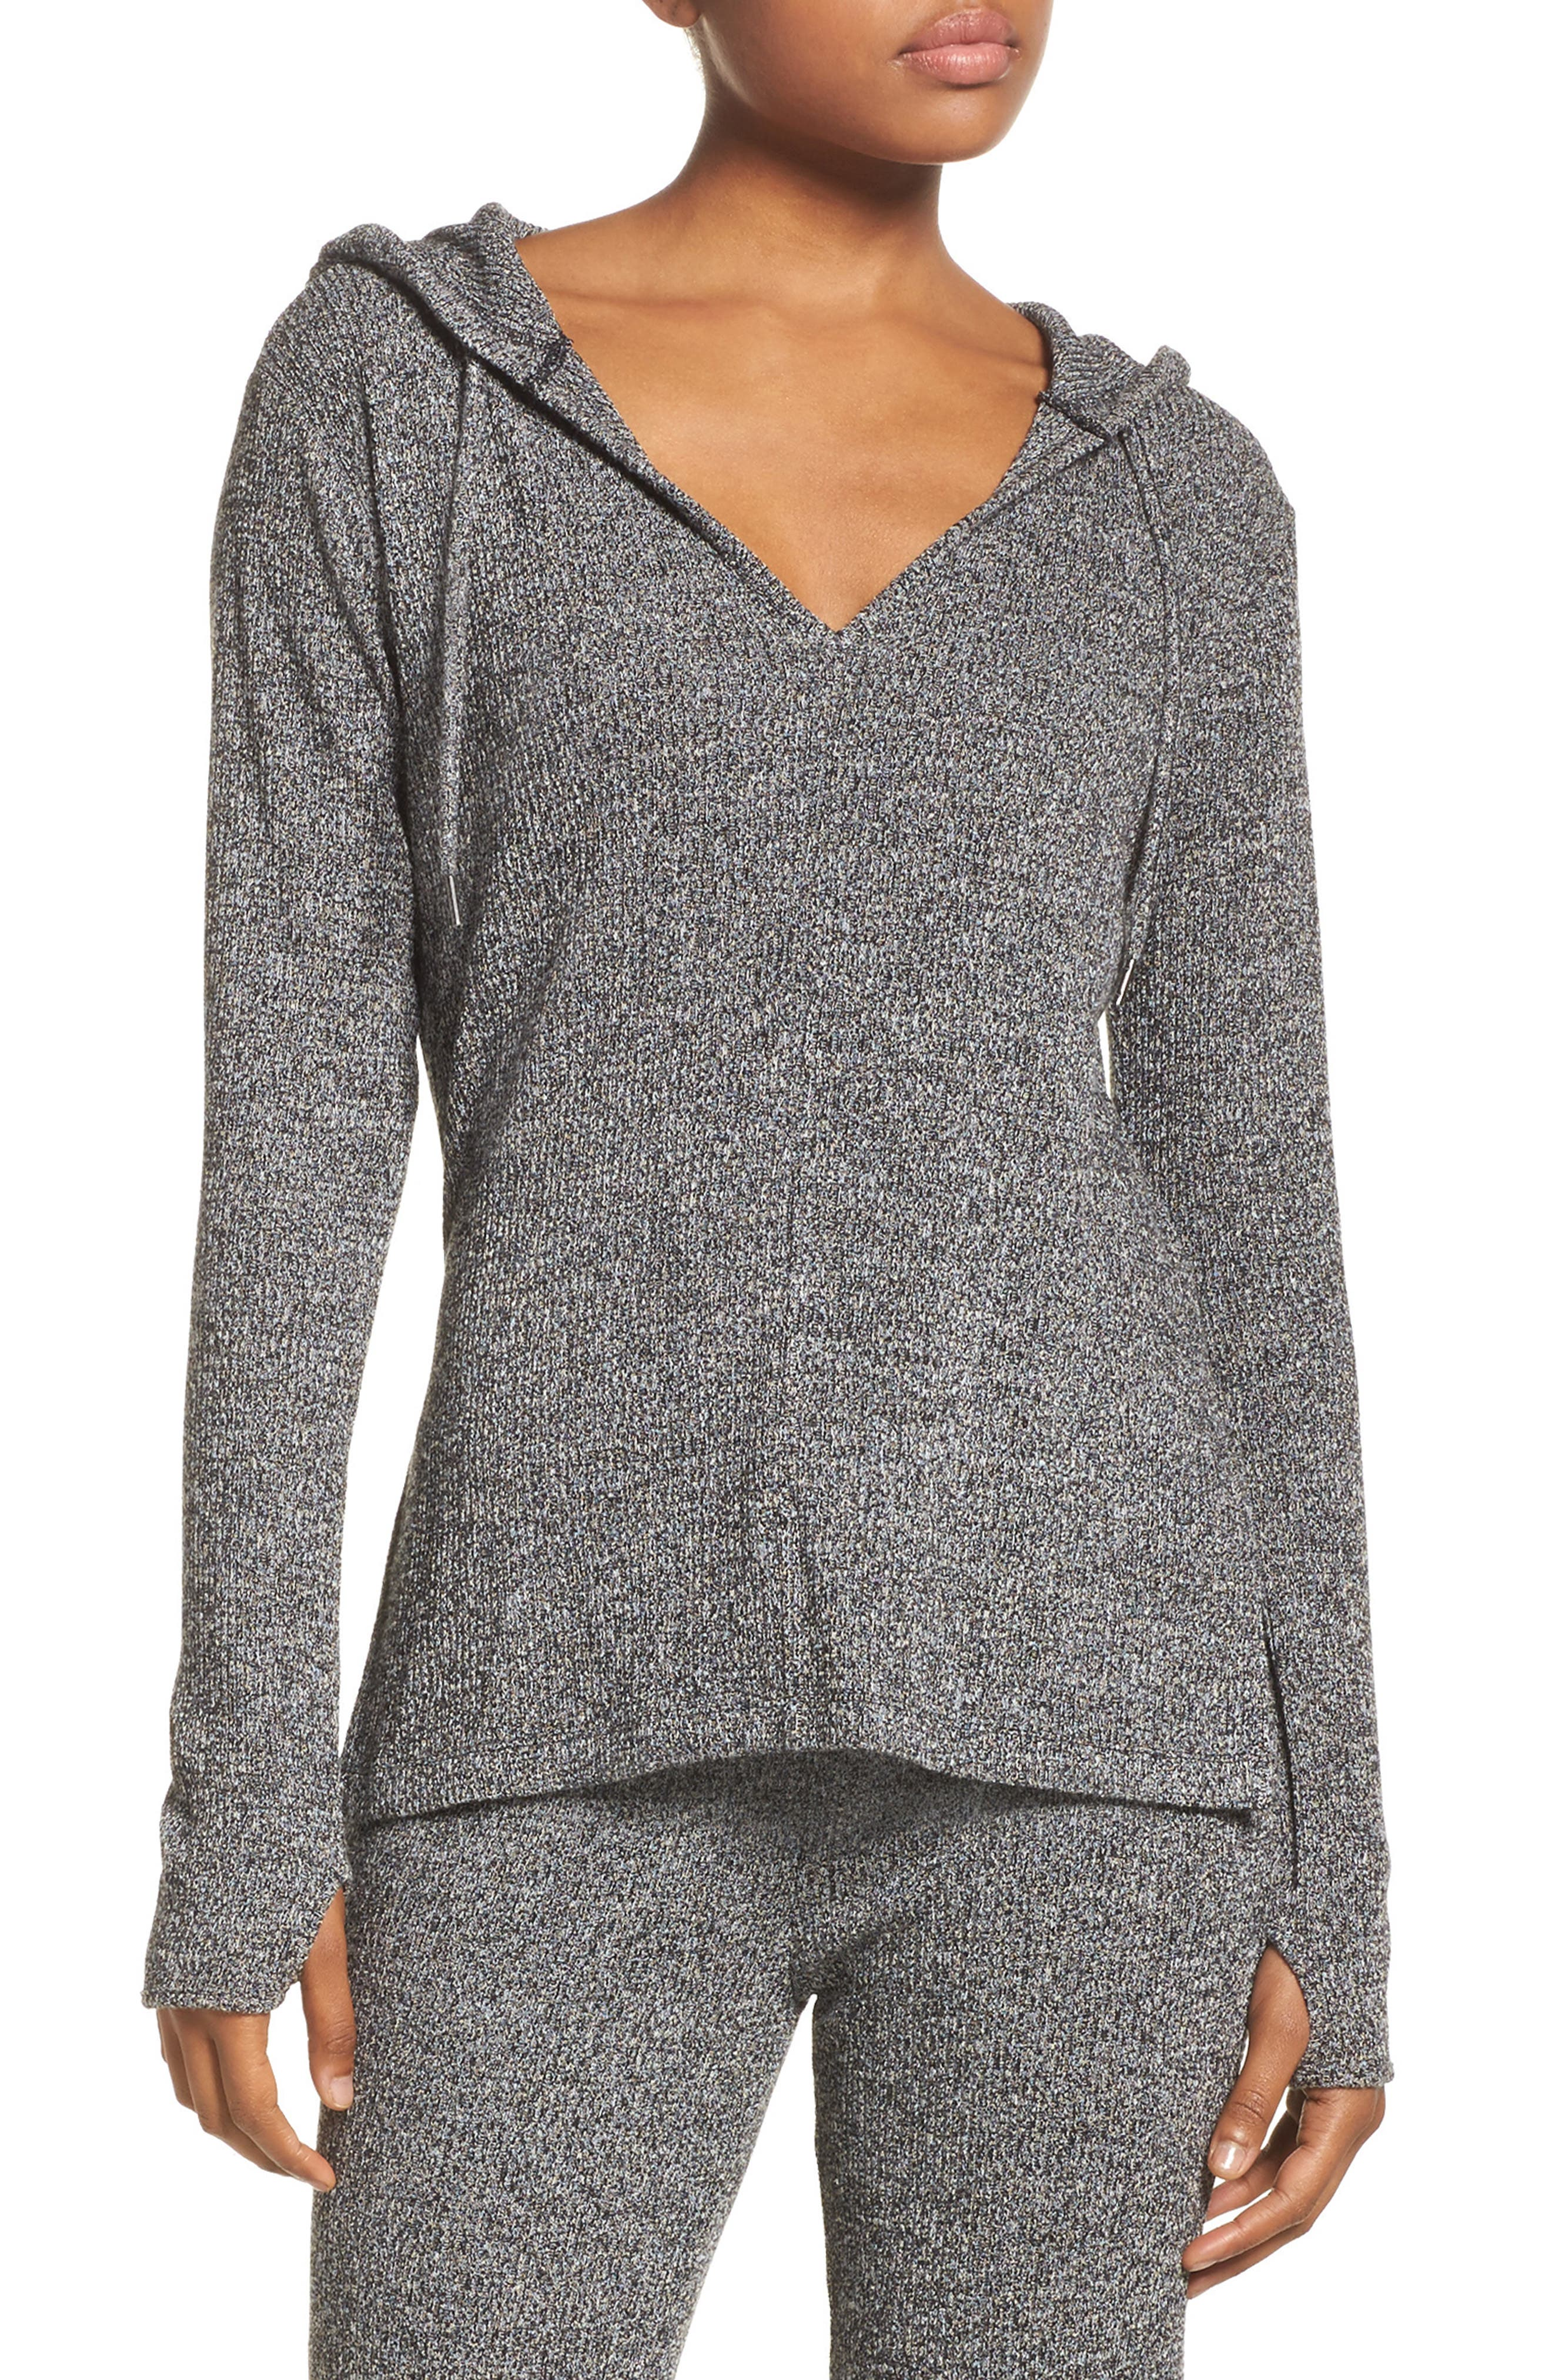 Zella Mantra Hooded Pullover Top